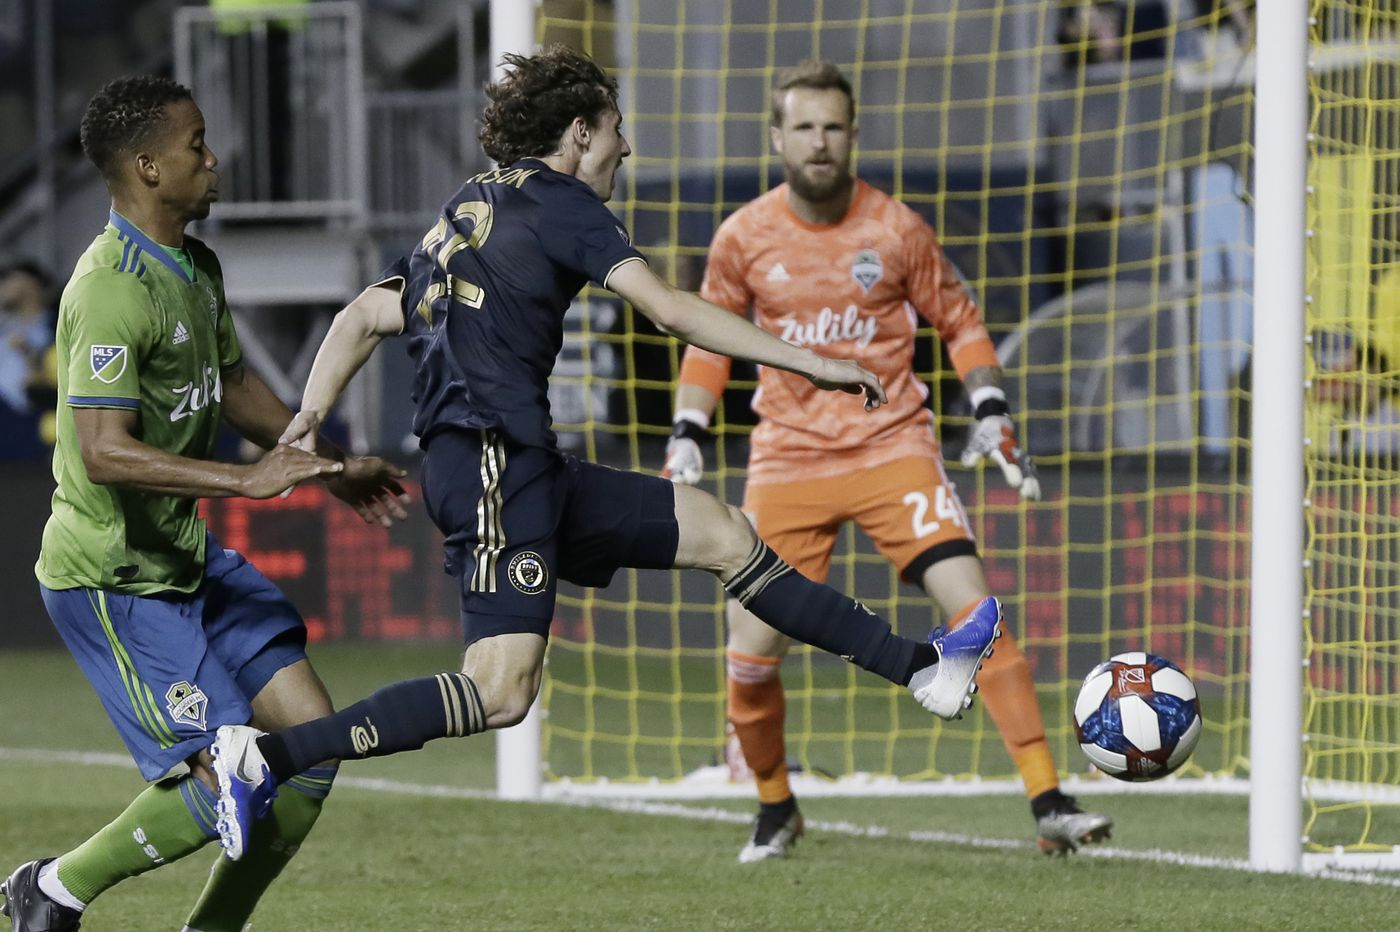 Union observations: Brenden Aaronson's big game also shows what he needs to improve